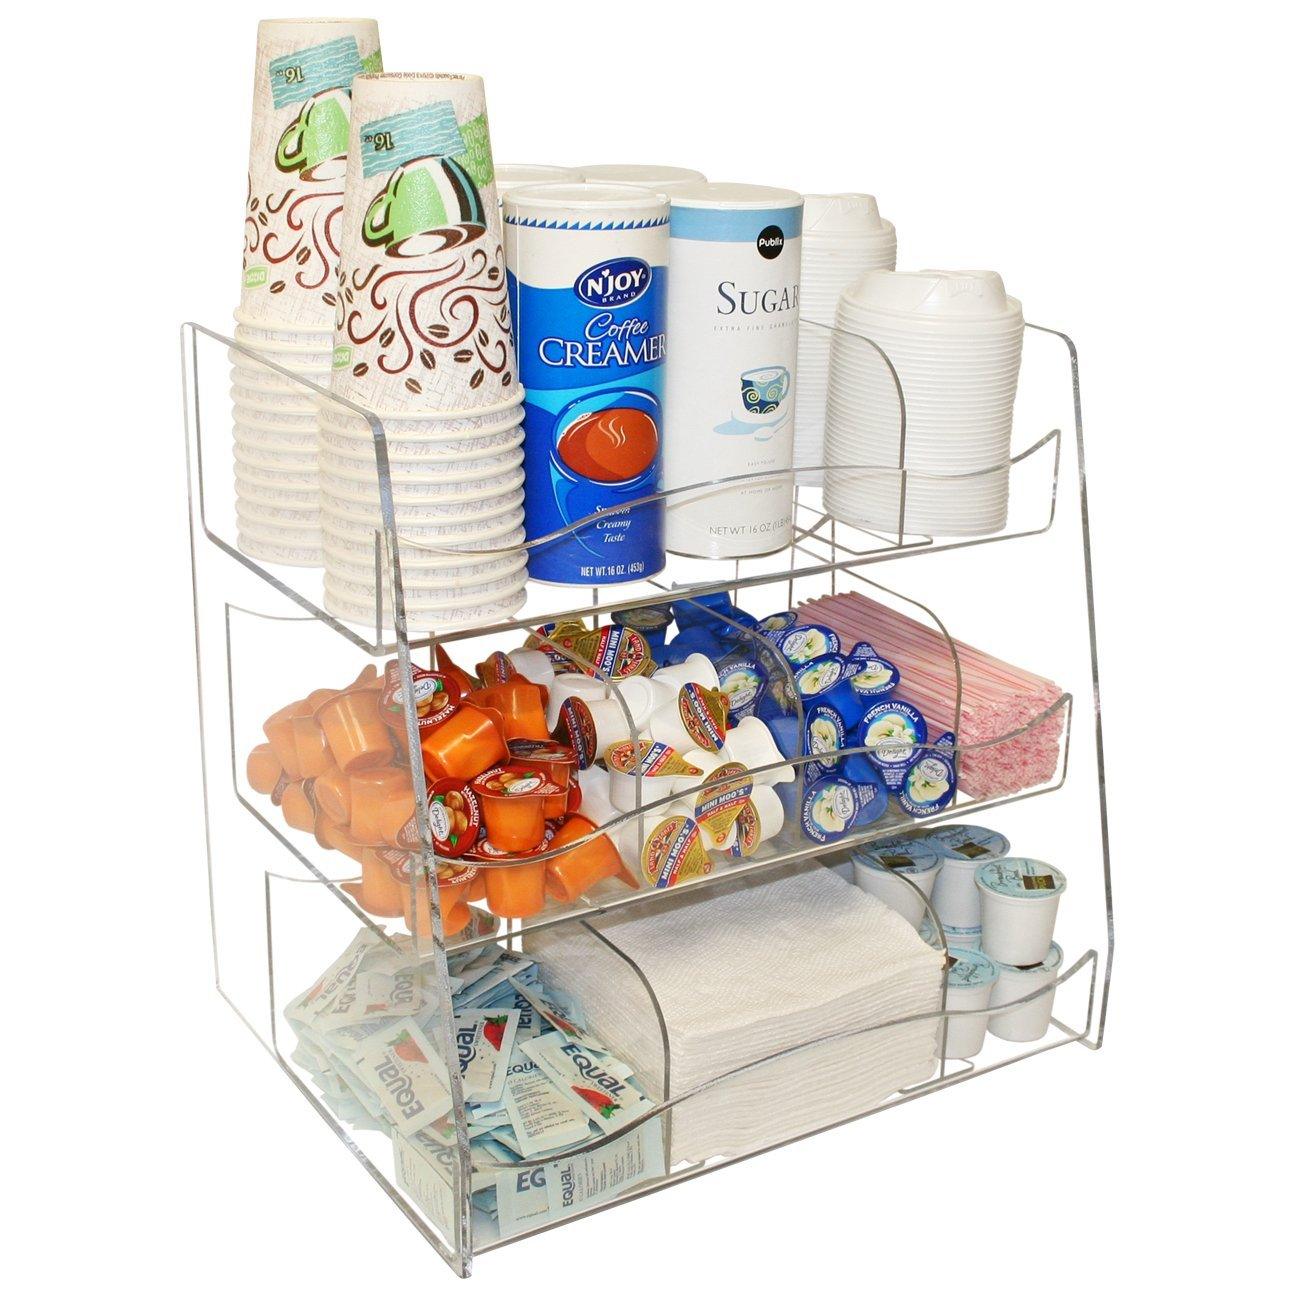 Coffee Condiment Organizer Clearly a First Class Presentation for You Customers.